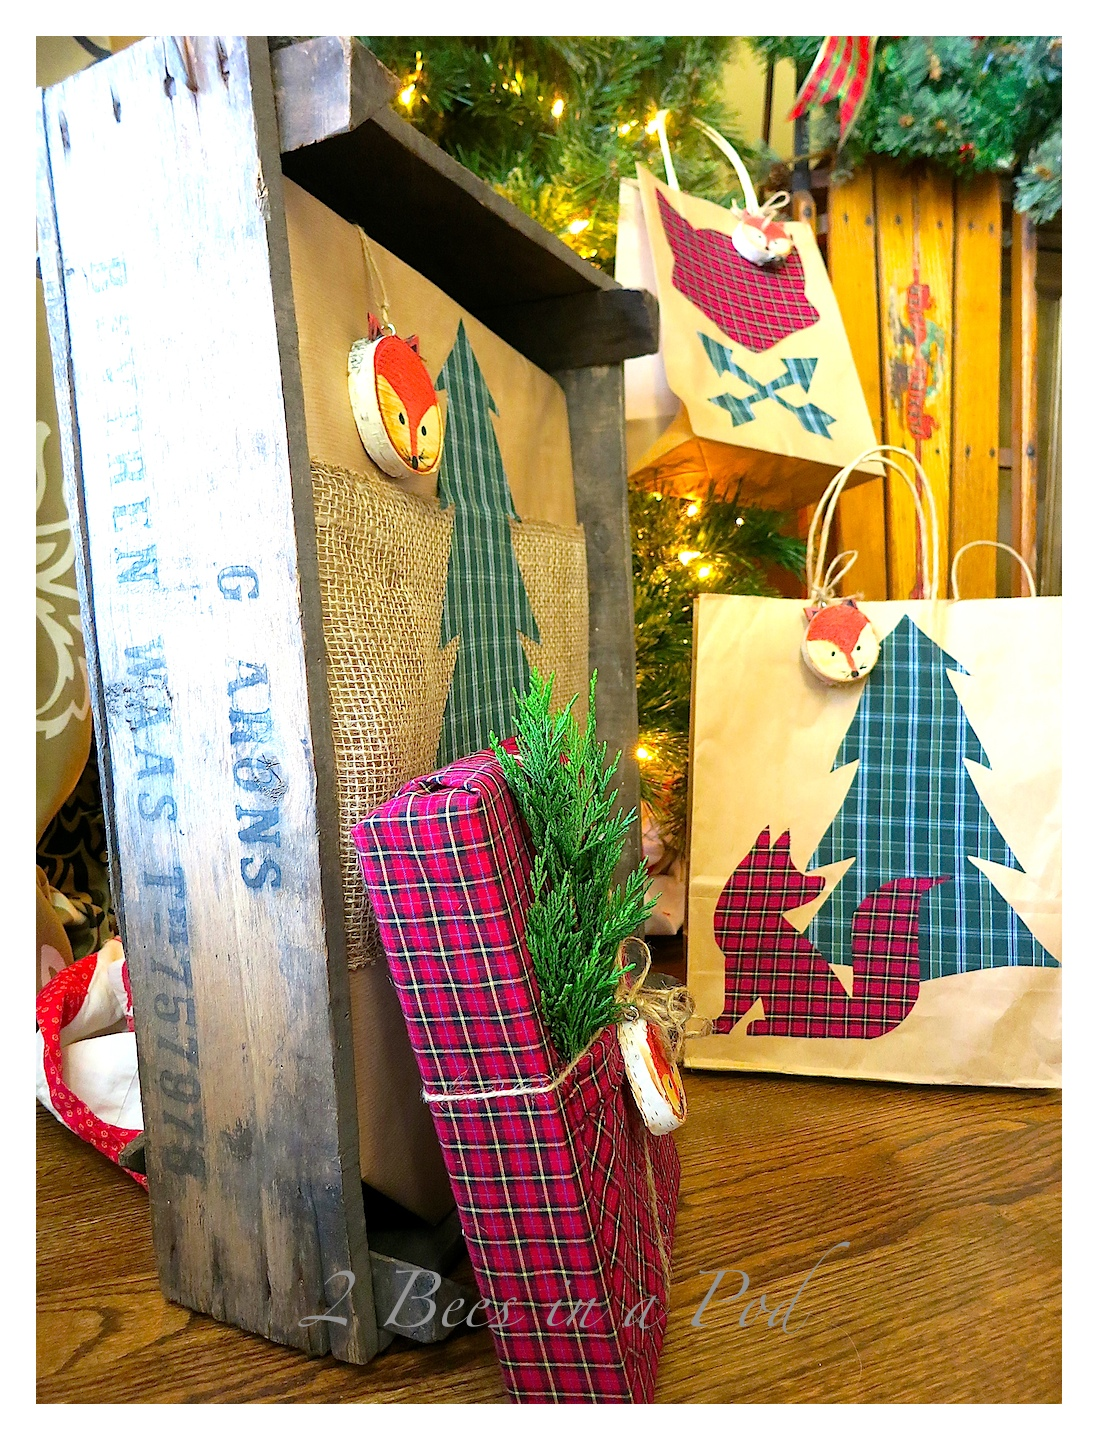 DIY Christmas Gift Wrap - Woodland Fox and Christmas Plaid. a hand painted wood slice fox as a gift tag. Bags Made from thrift store plaid shirts, Heat and Bond and cut out shapes ironed onto kraft bags. Also used a shirt as gift wrap and decorated the pocket :)